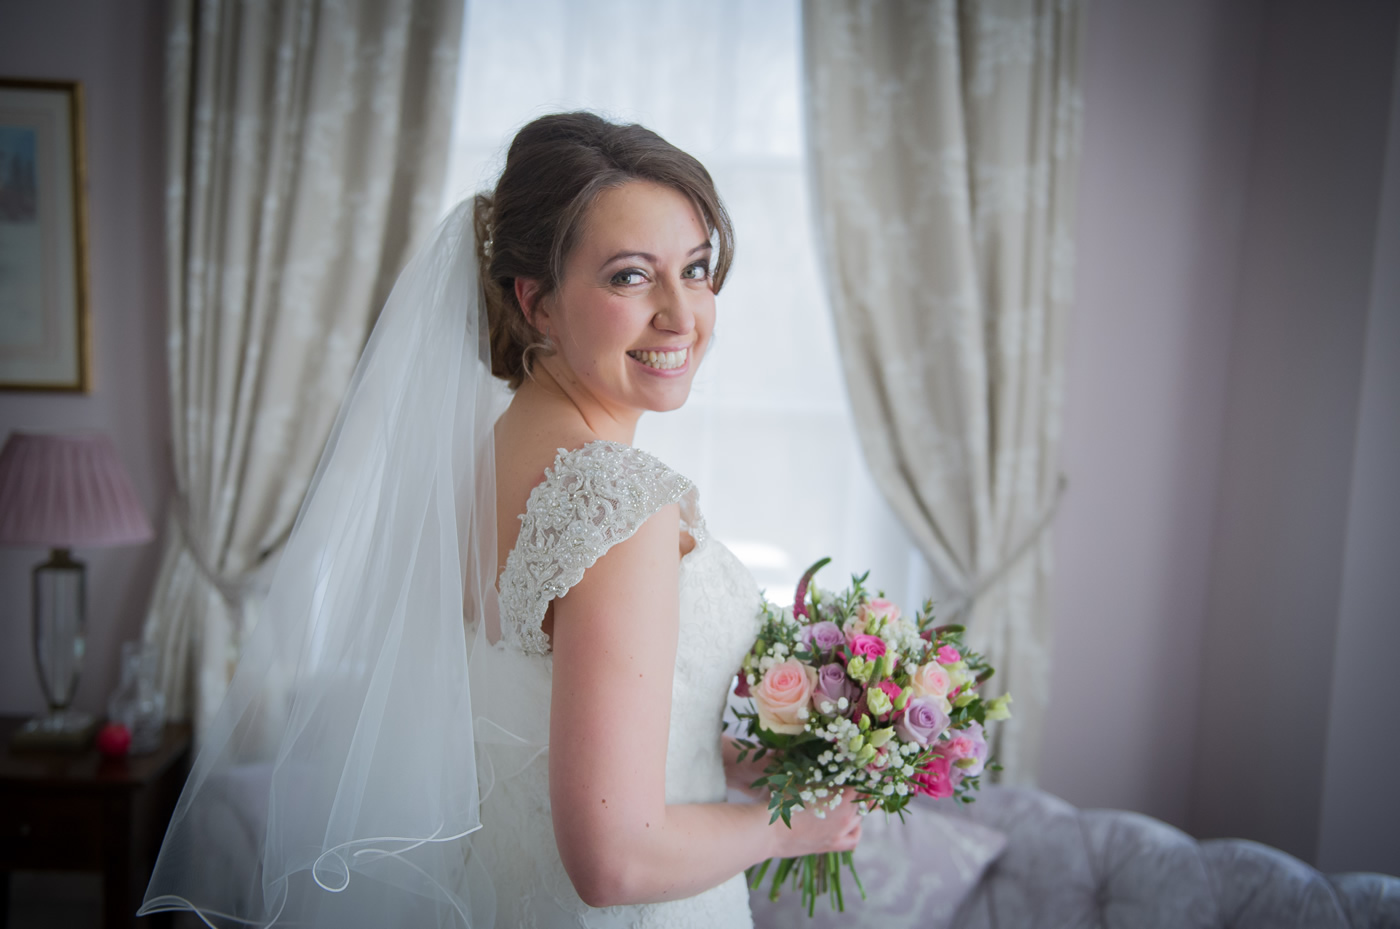 Briadal Hair & Makeup For Brides, Bridesmaids & Mothers - Burnham Beeches Hotel Wedding near Slough & Windsor